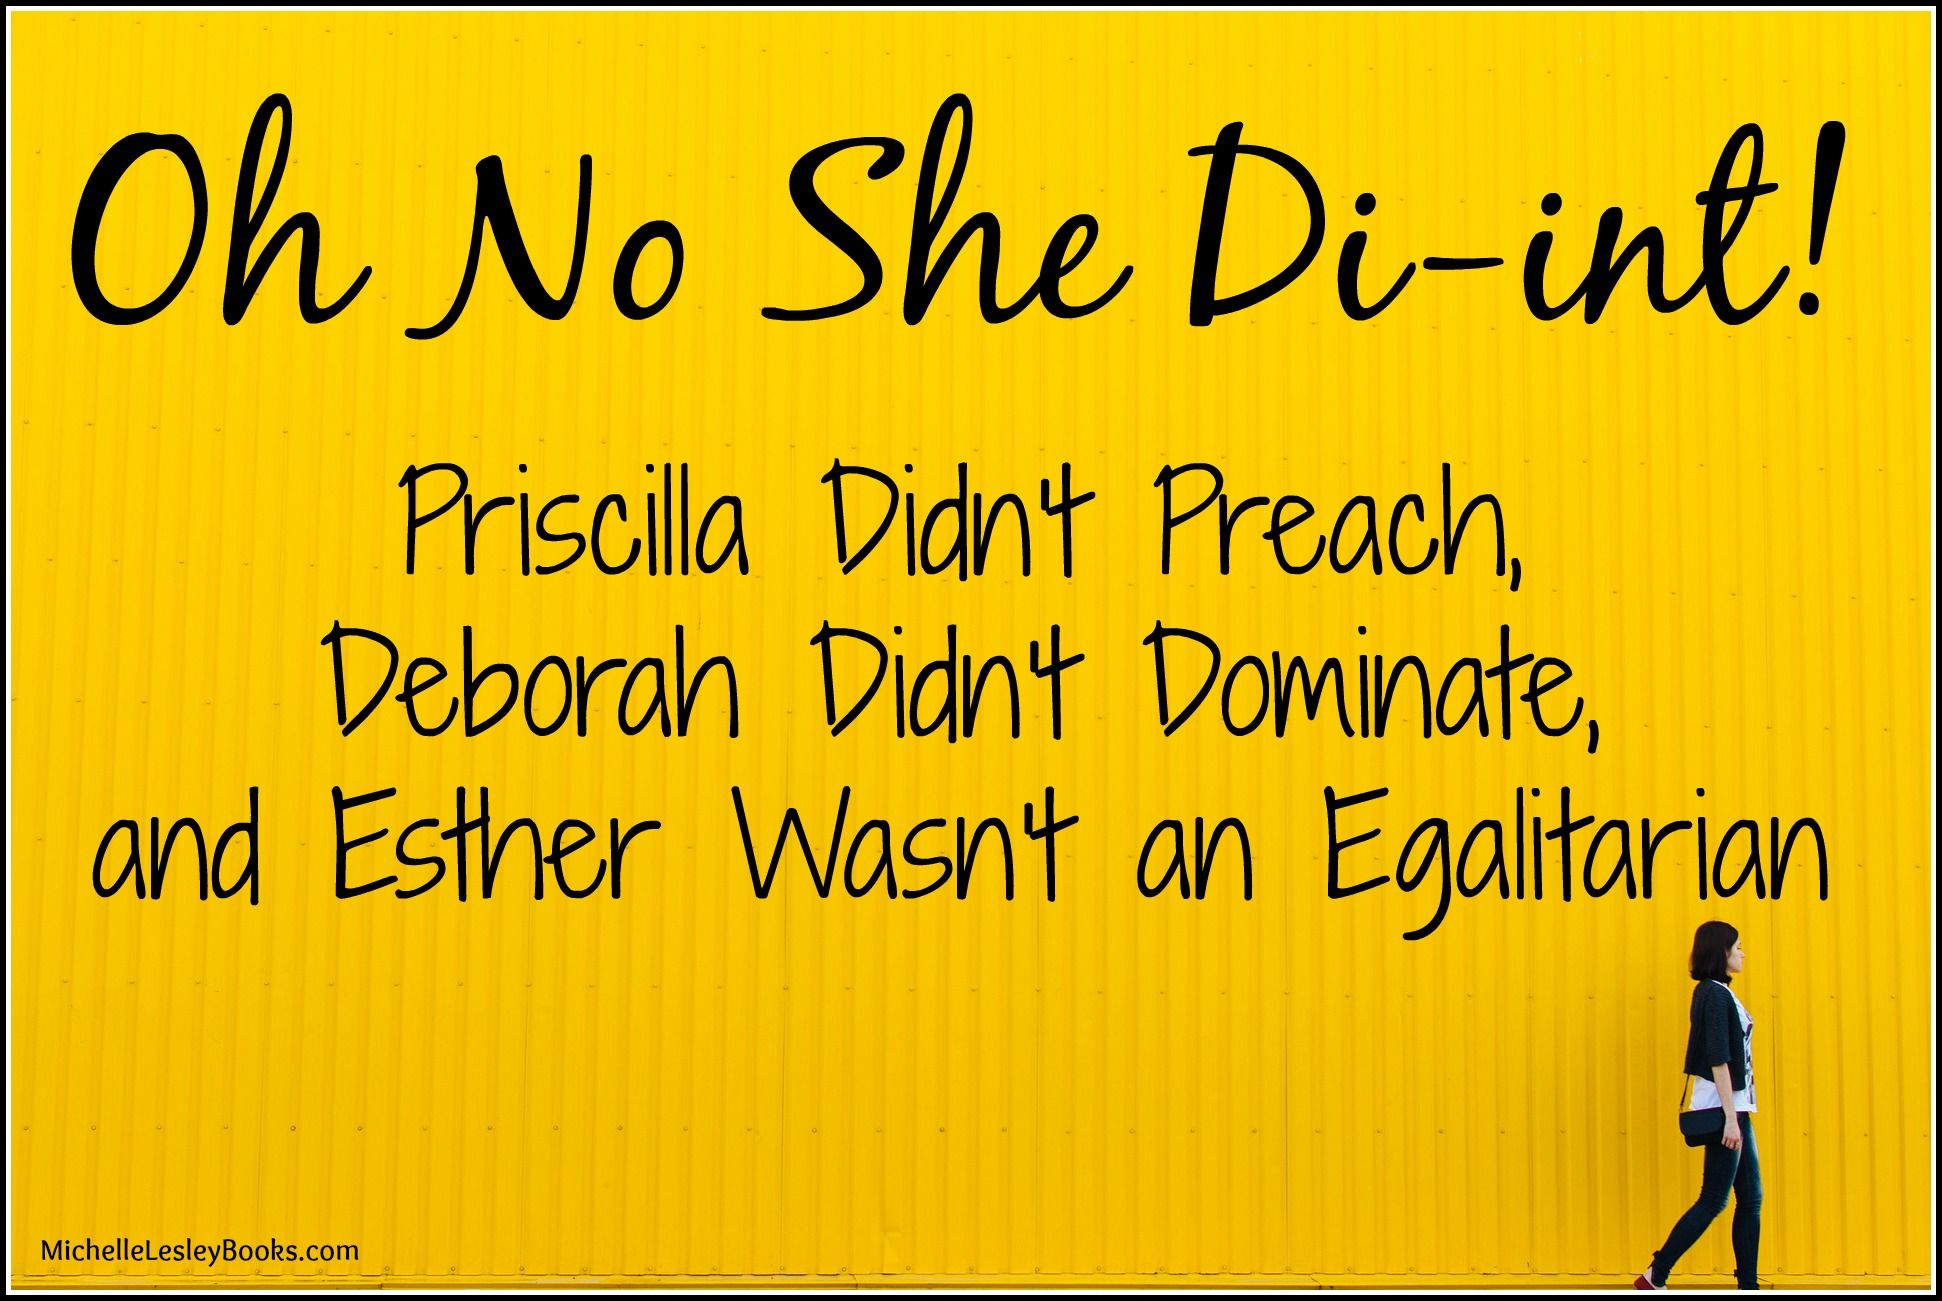 We Are To Follow In The Footsteps Of Godly Women Like Esther Priscilla And All The Others By Humbly Submitting To God S Esther Biblical Womanhood Read Bible